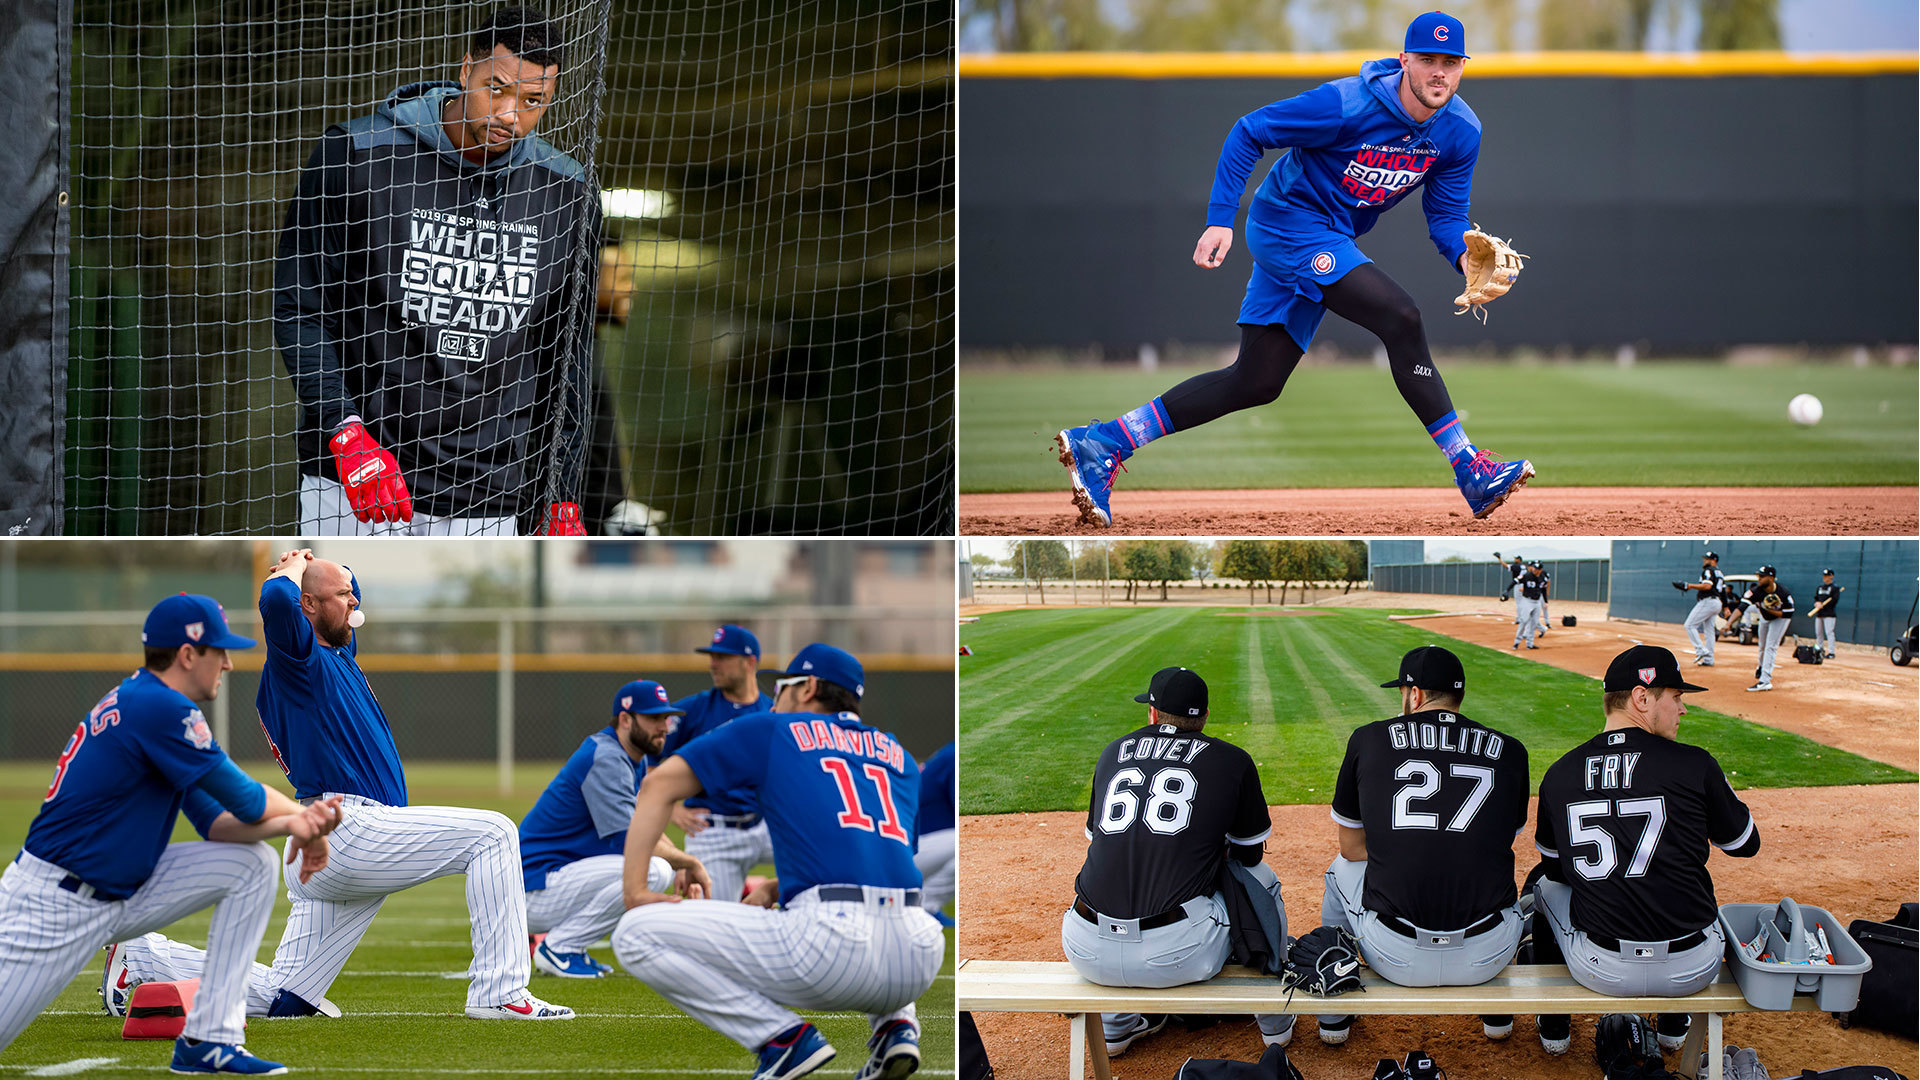 Welcome back, baseball. Here are the best photos of the Cubs and White Sox at spring training